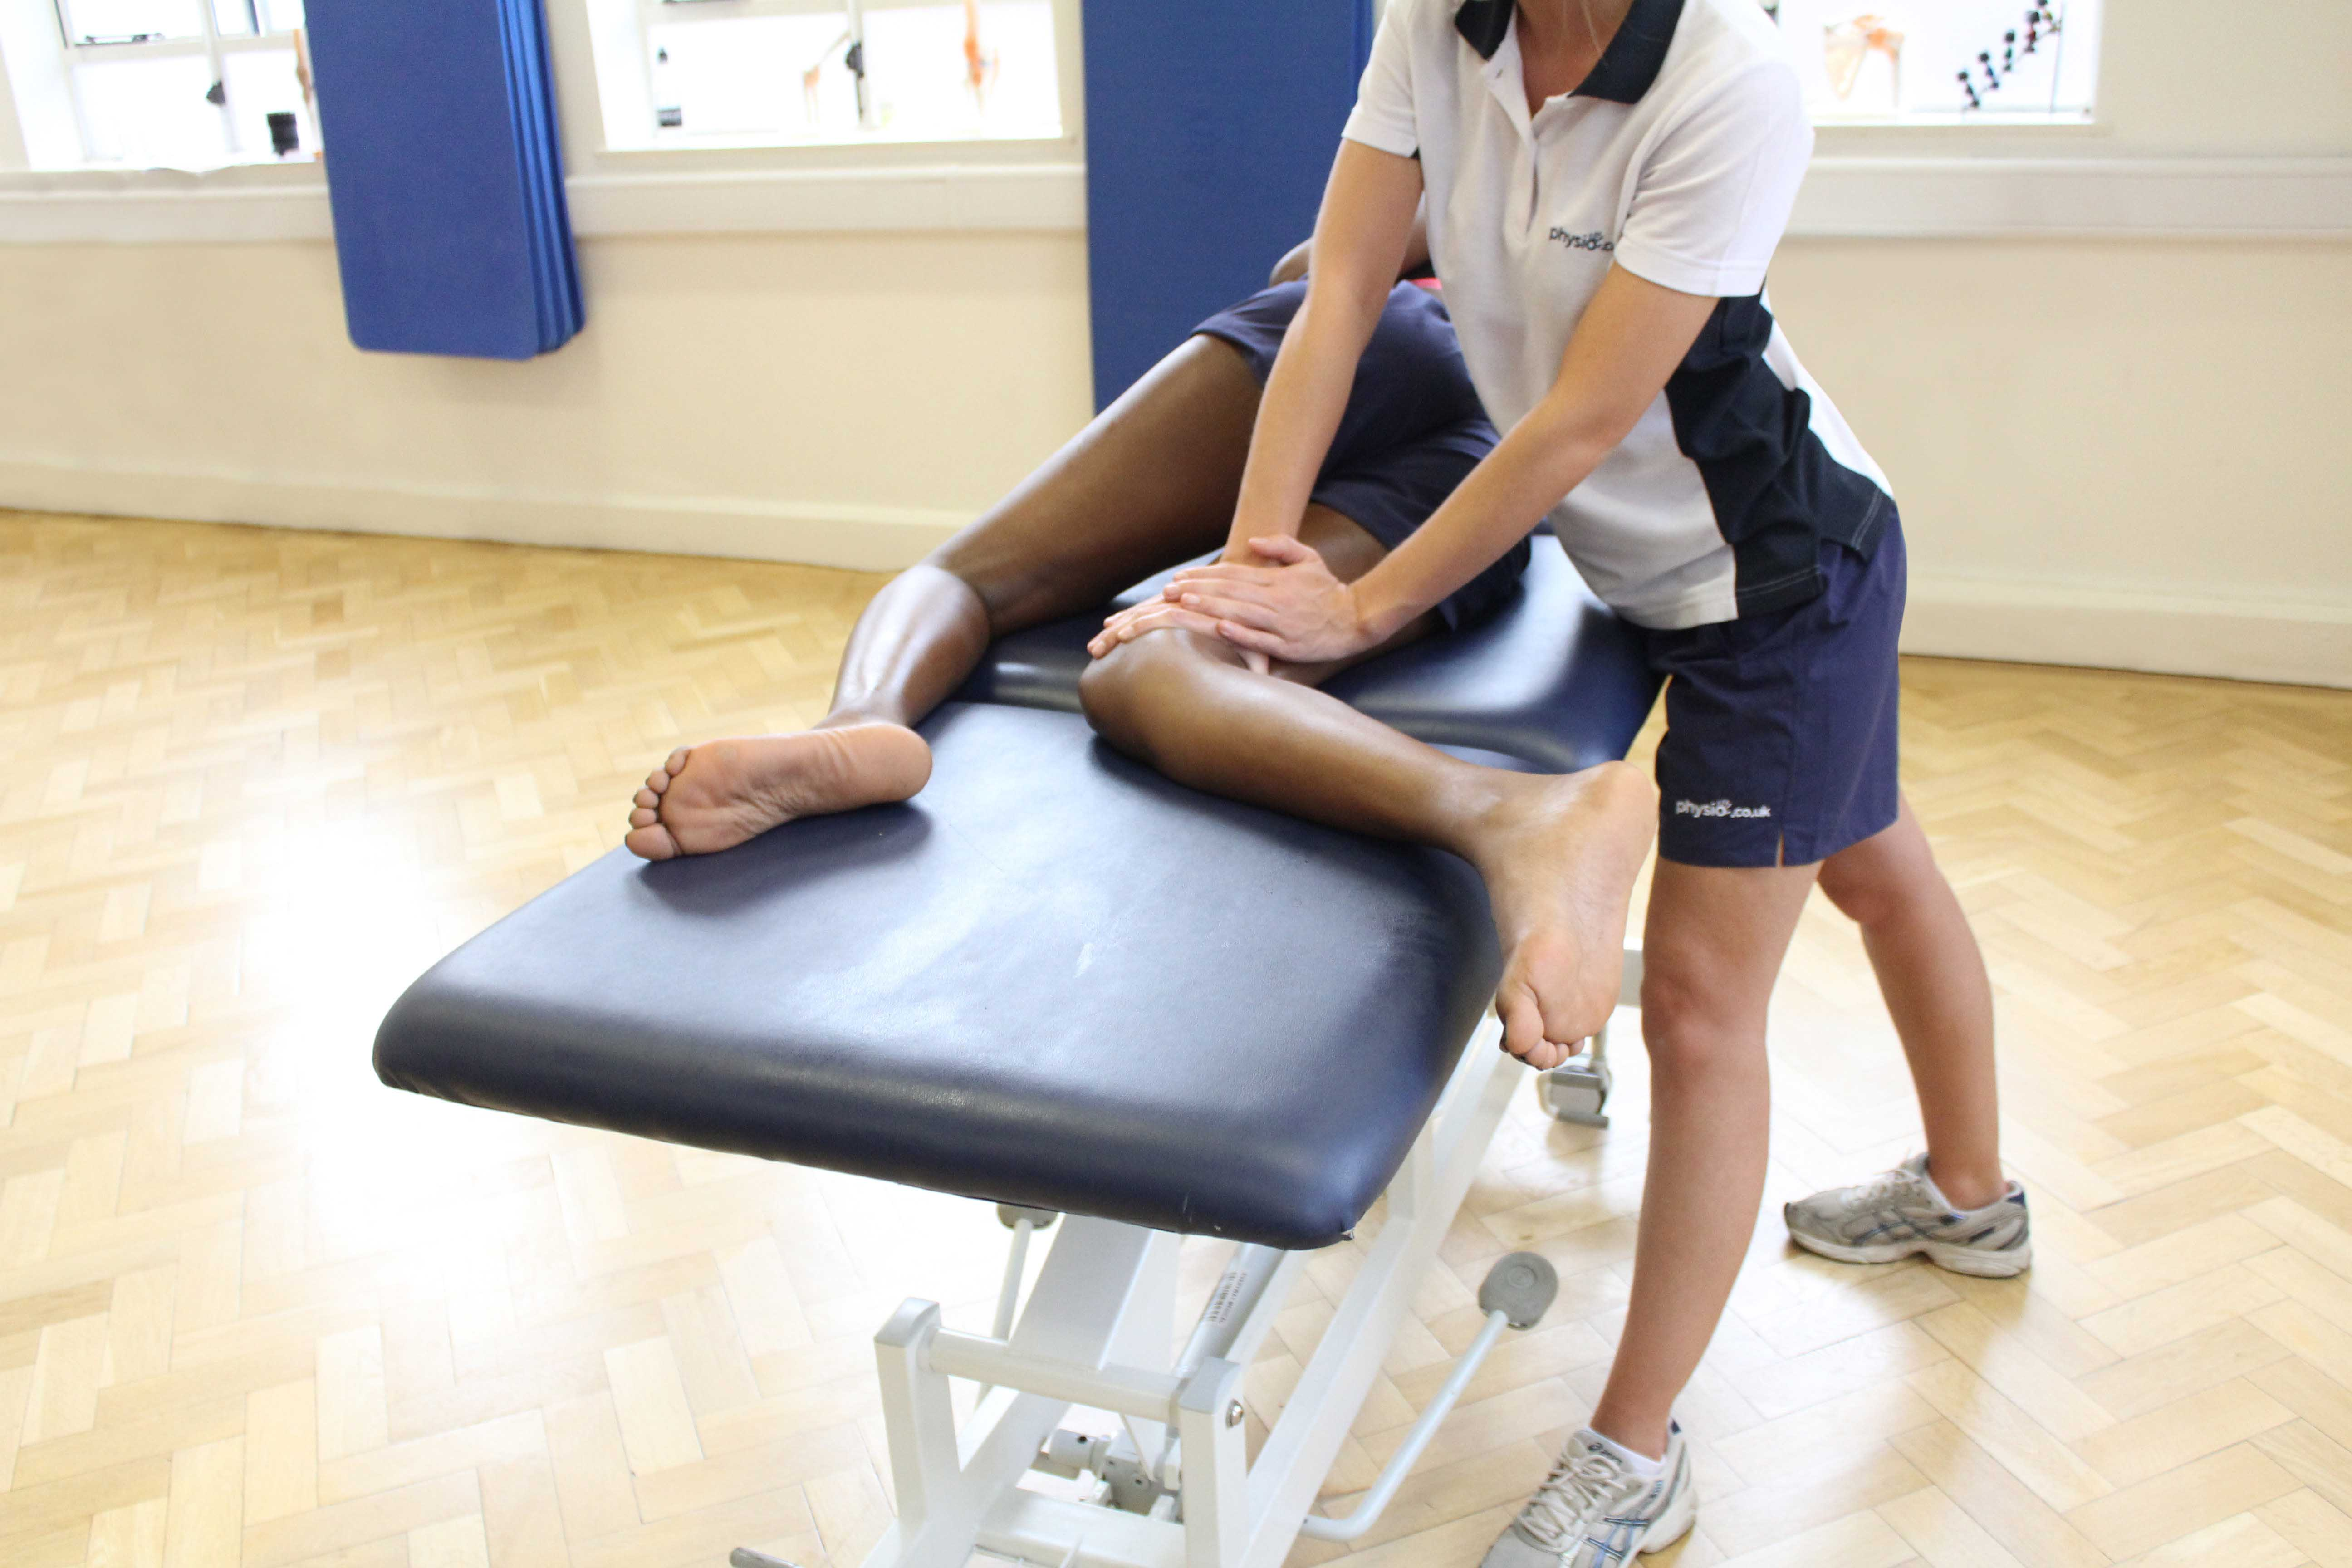 Soft tissue massage of the hamstring muscles by experienced therapist